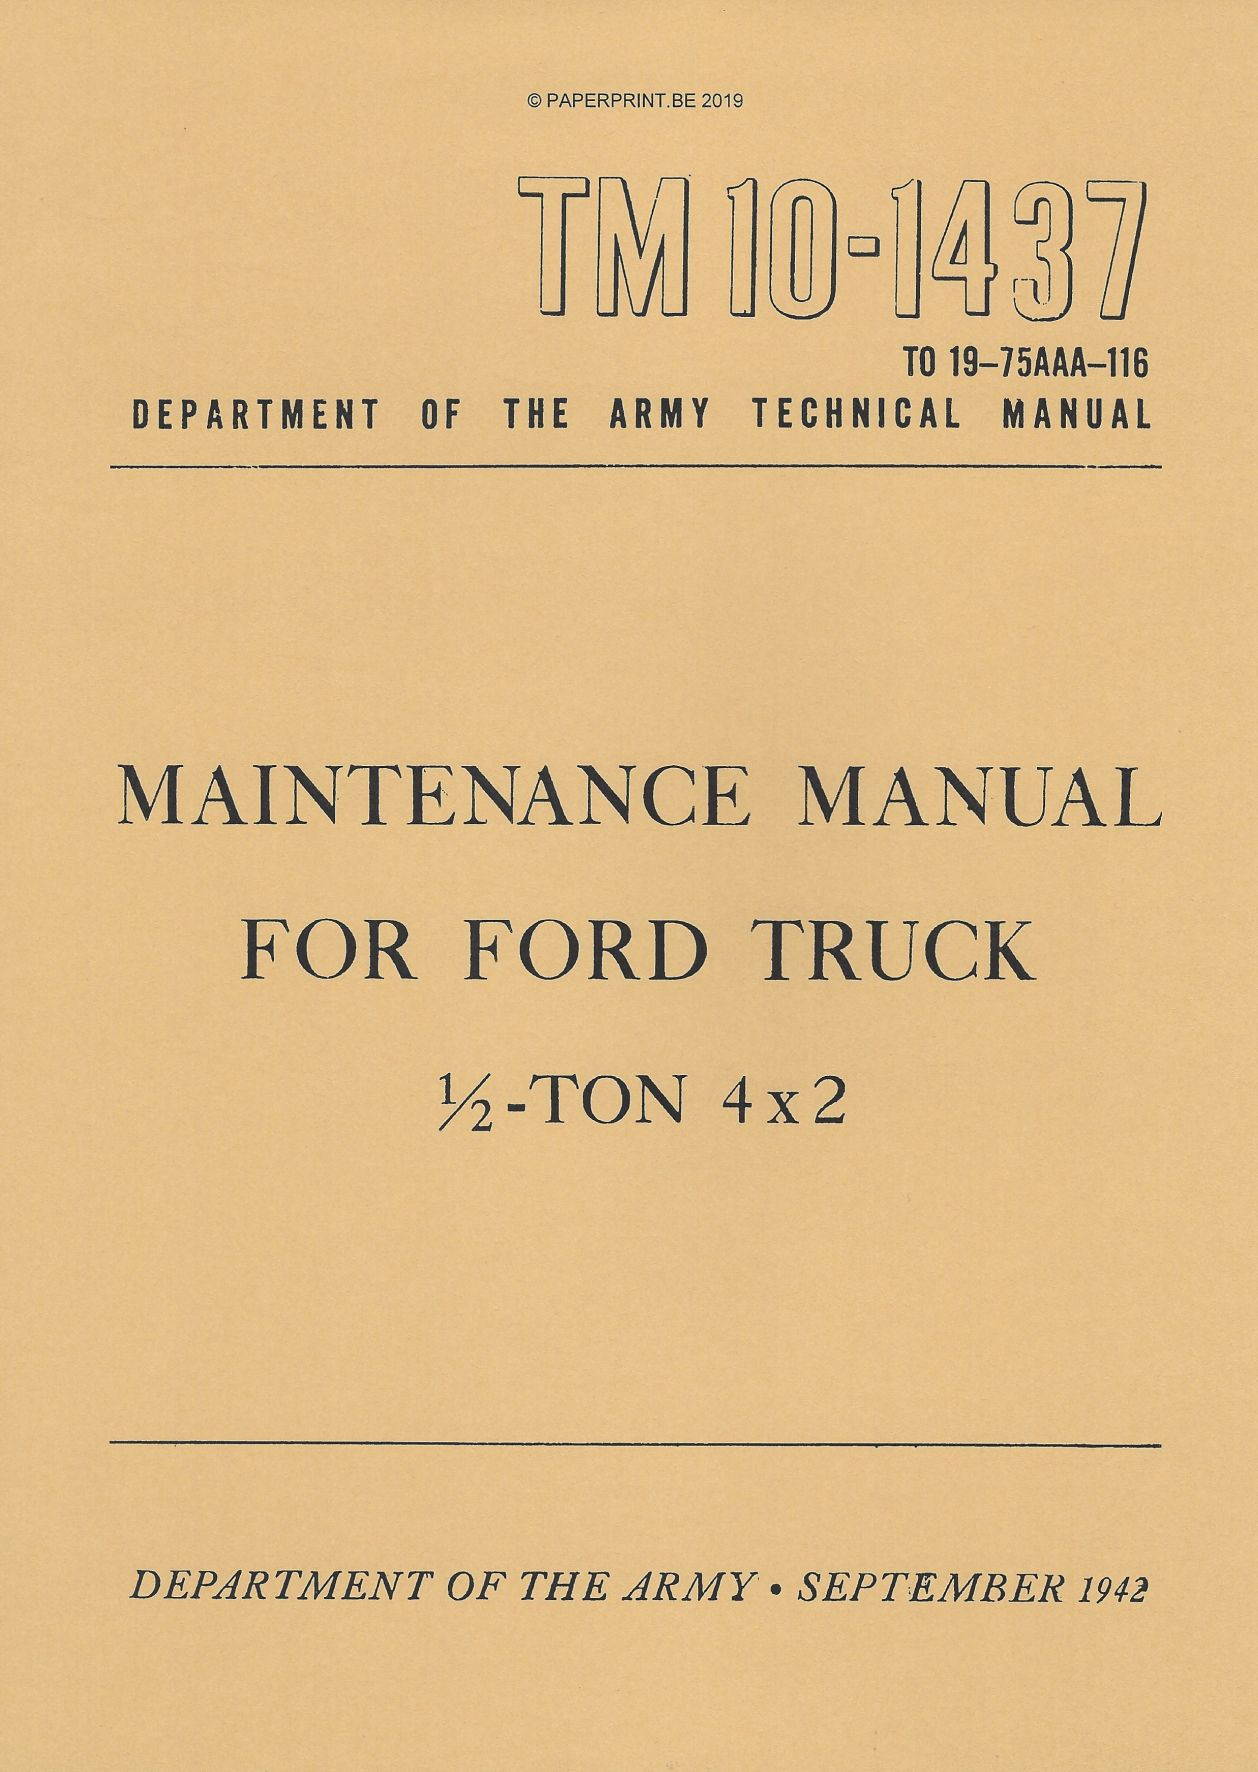 TM 10-1437 US FORD TRUCK ½ TON 4x2 MAINTENANCE MANUAL